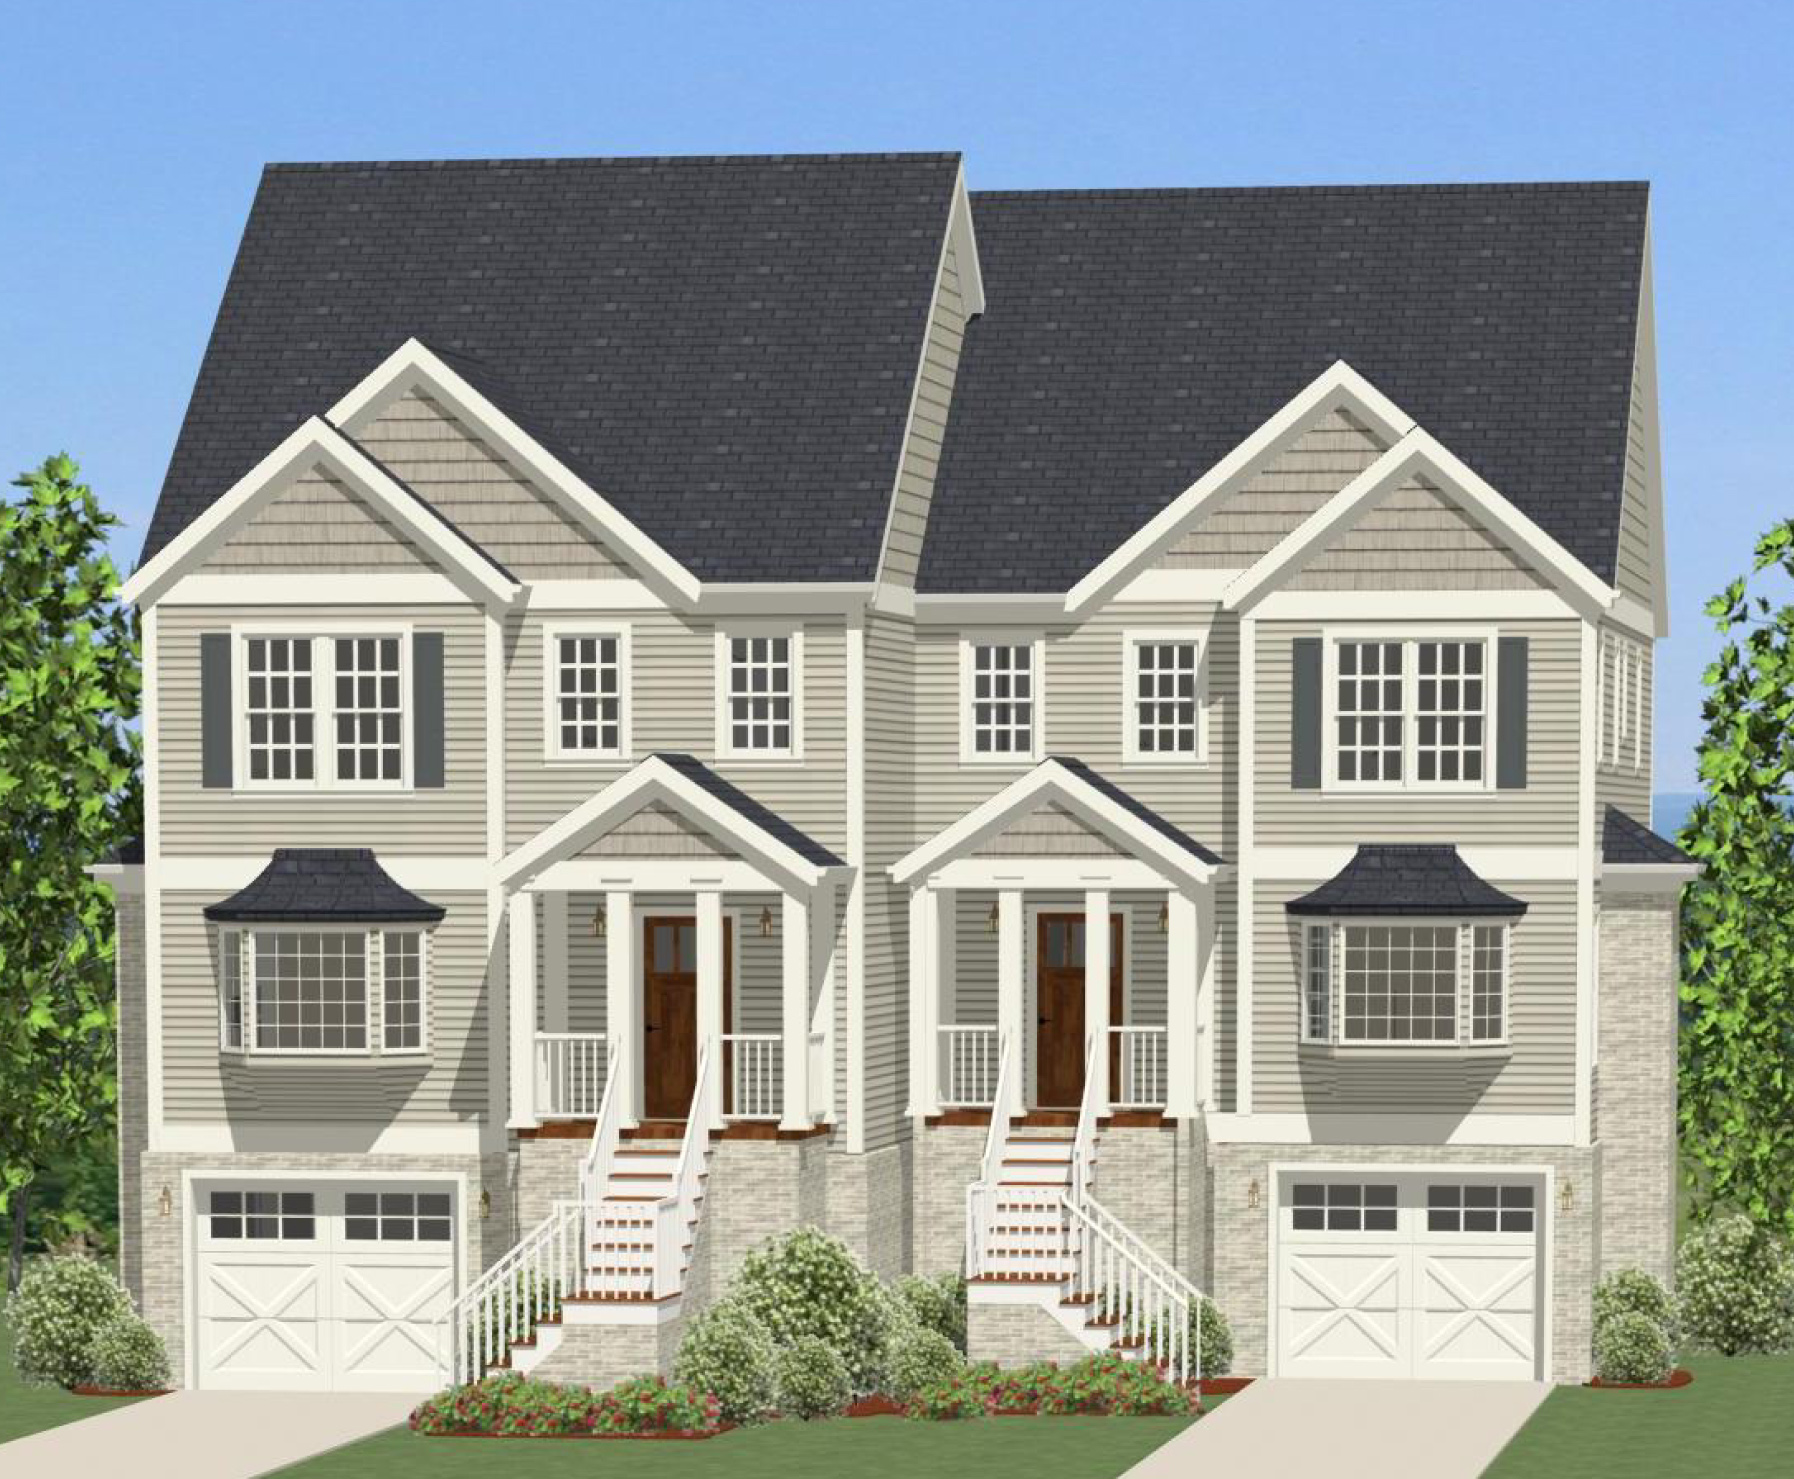 Offset duplex house plan with rear decks 46272la 2nd for House designs with master bedroom at rear